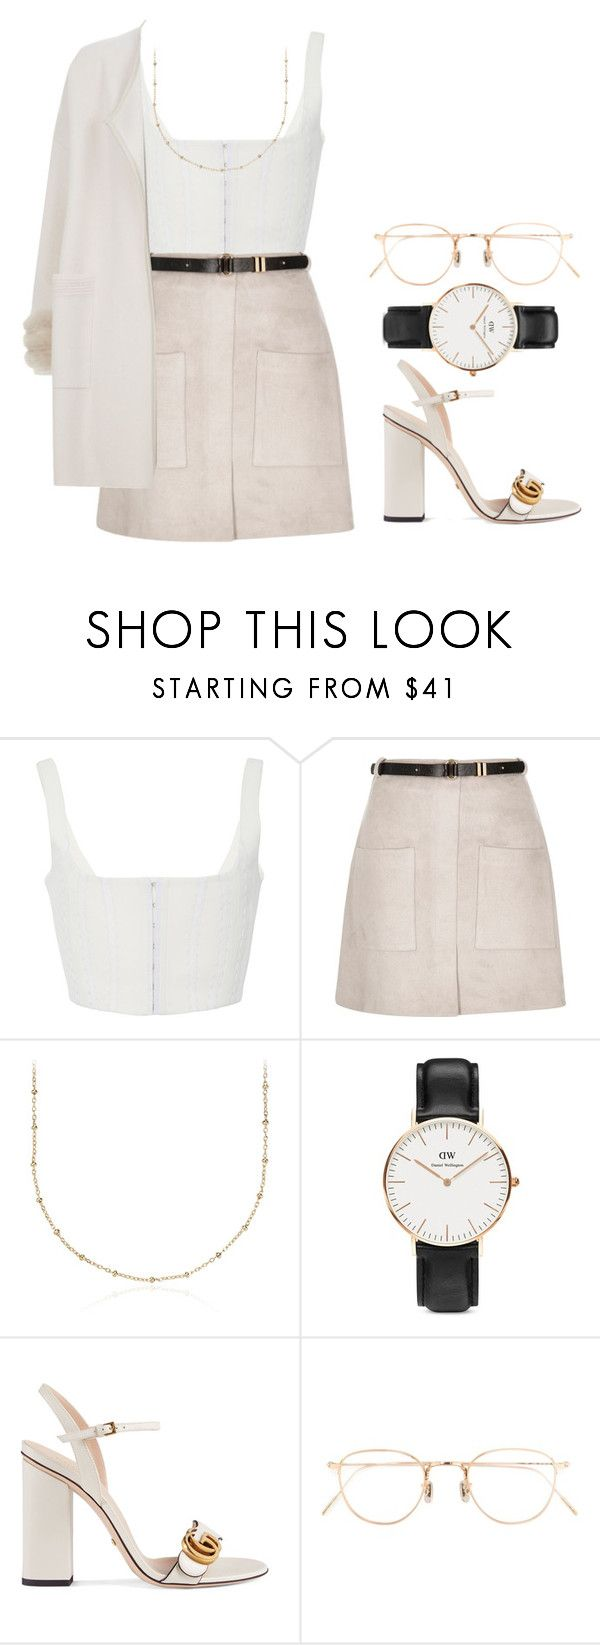 @lawrence by melanie-pacheco on Polyvore featuring moda, Max & Moi, River Island, Gucci, Blue Nile, Daniel Wellington, Eyevan 7285, fashionset, guccishoes and travelforworld